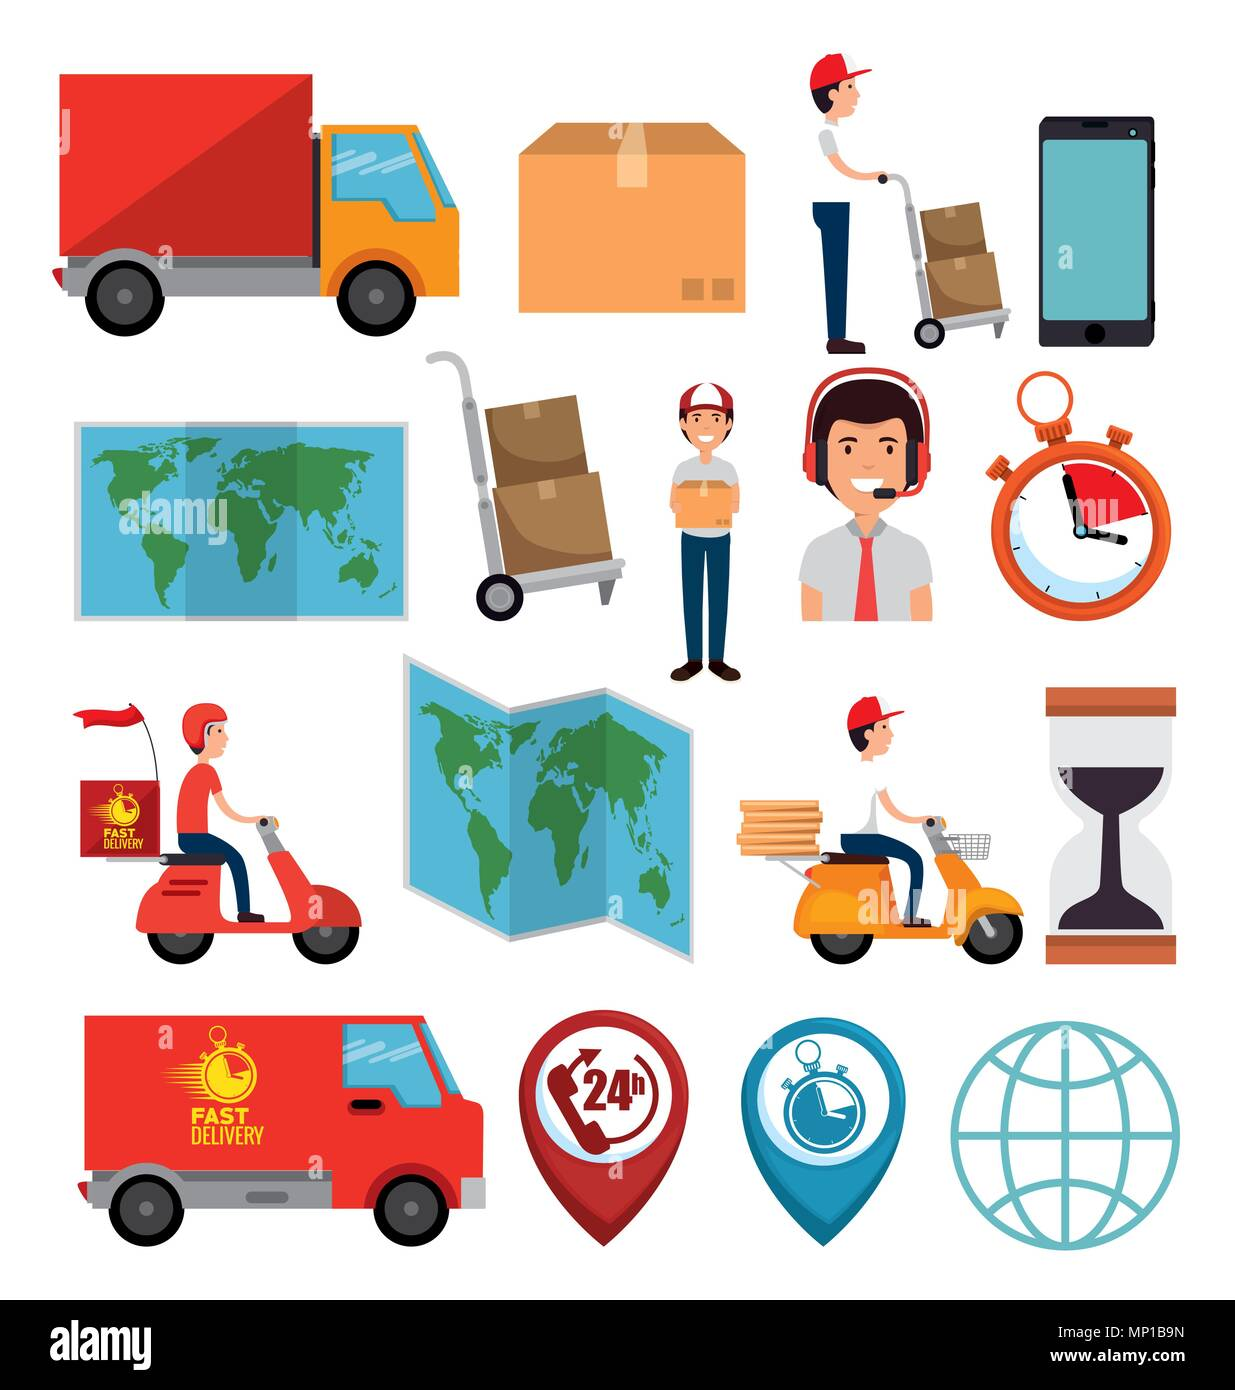 delivery service set icons - Stock Image